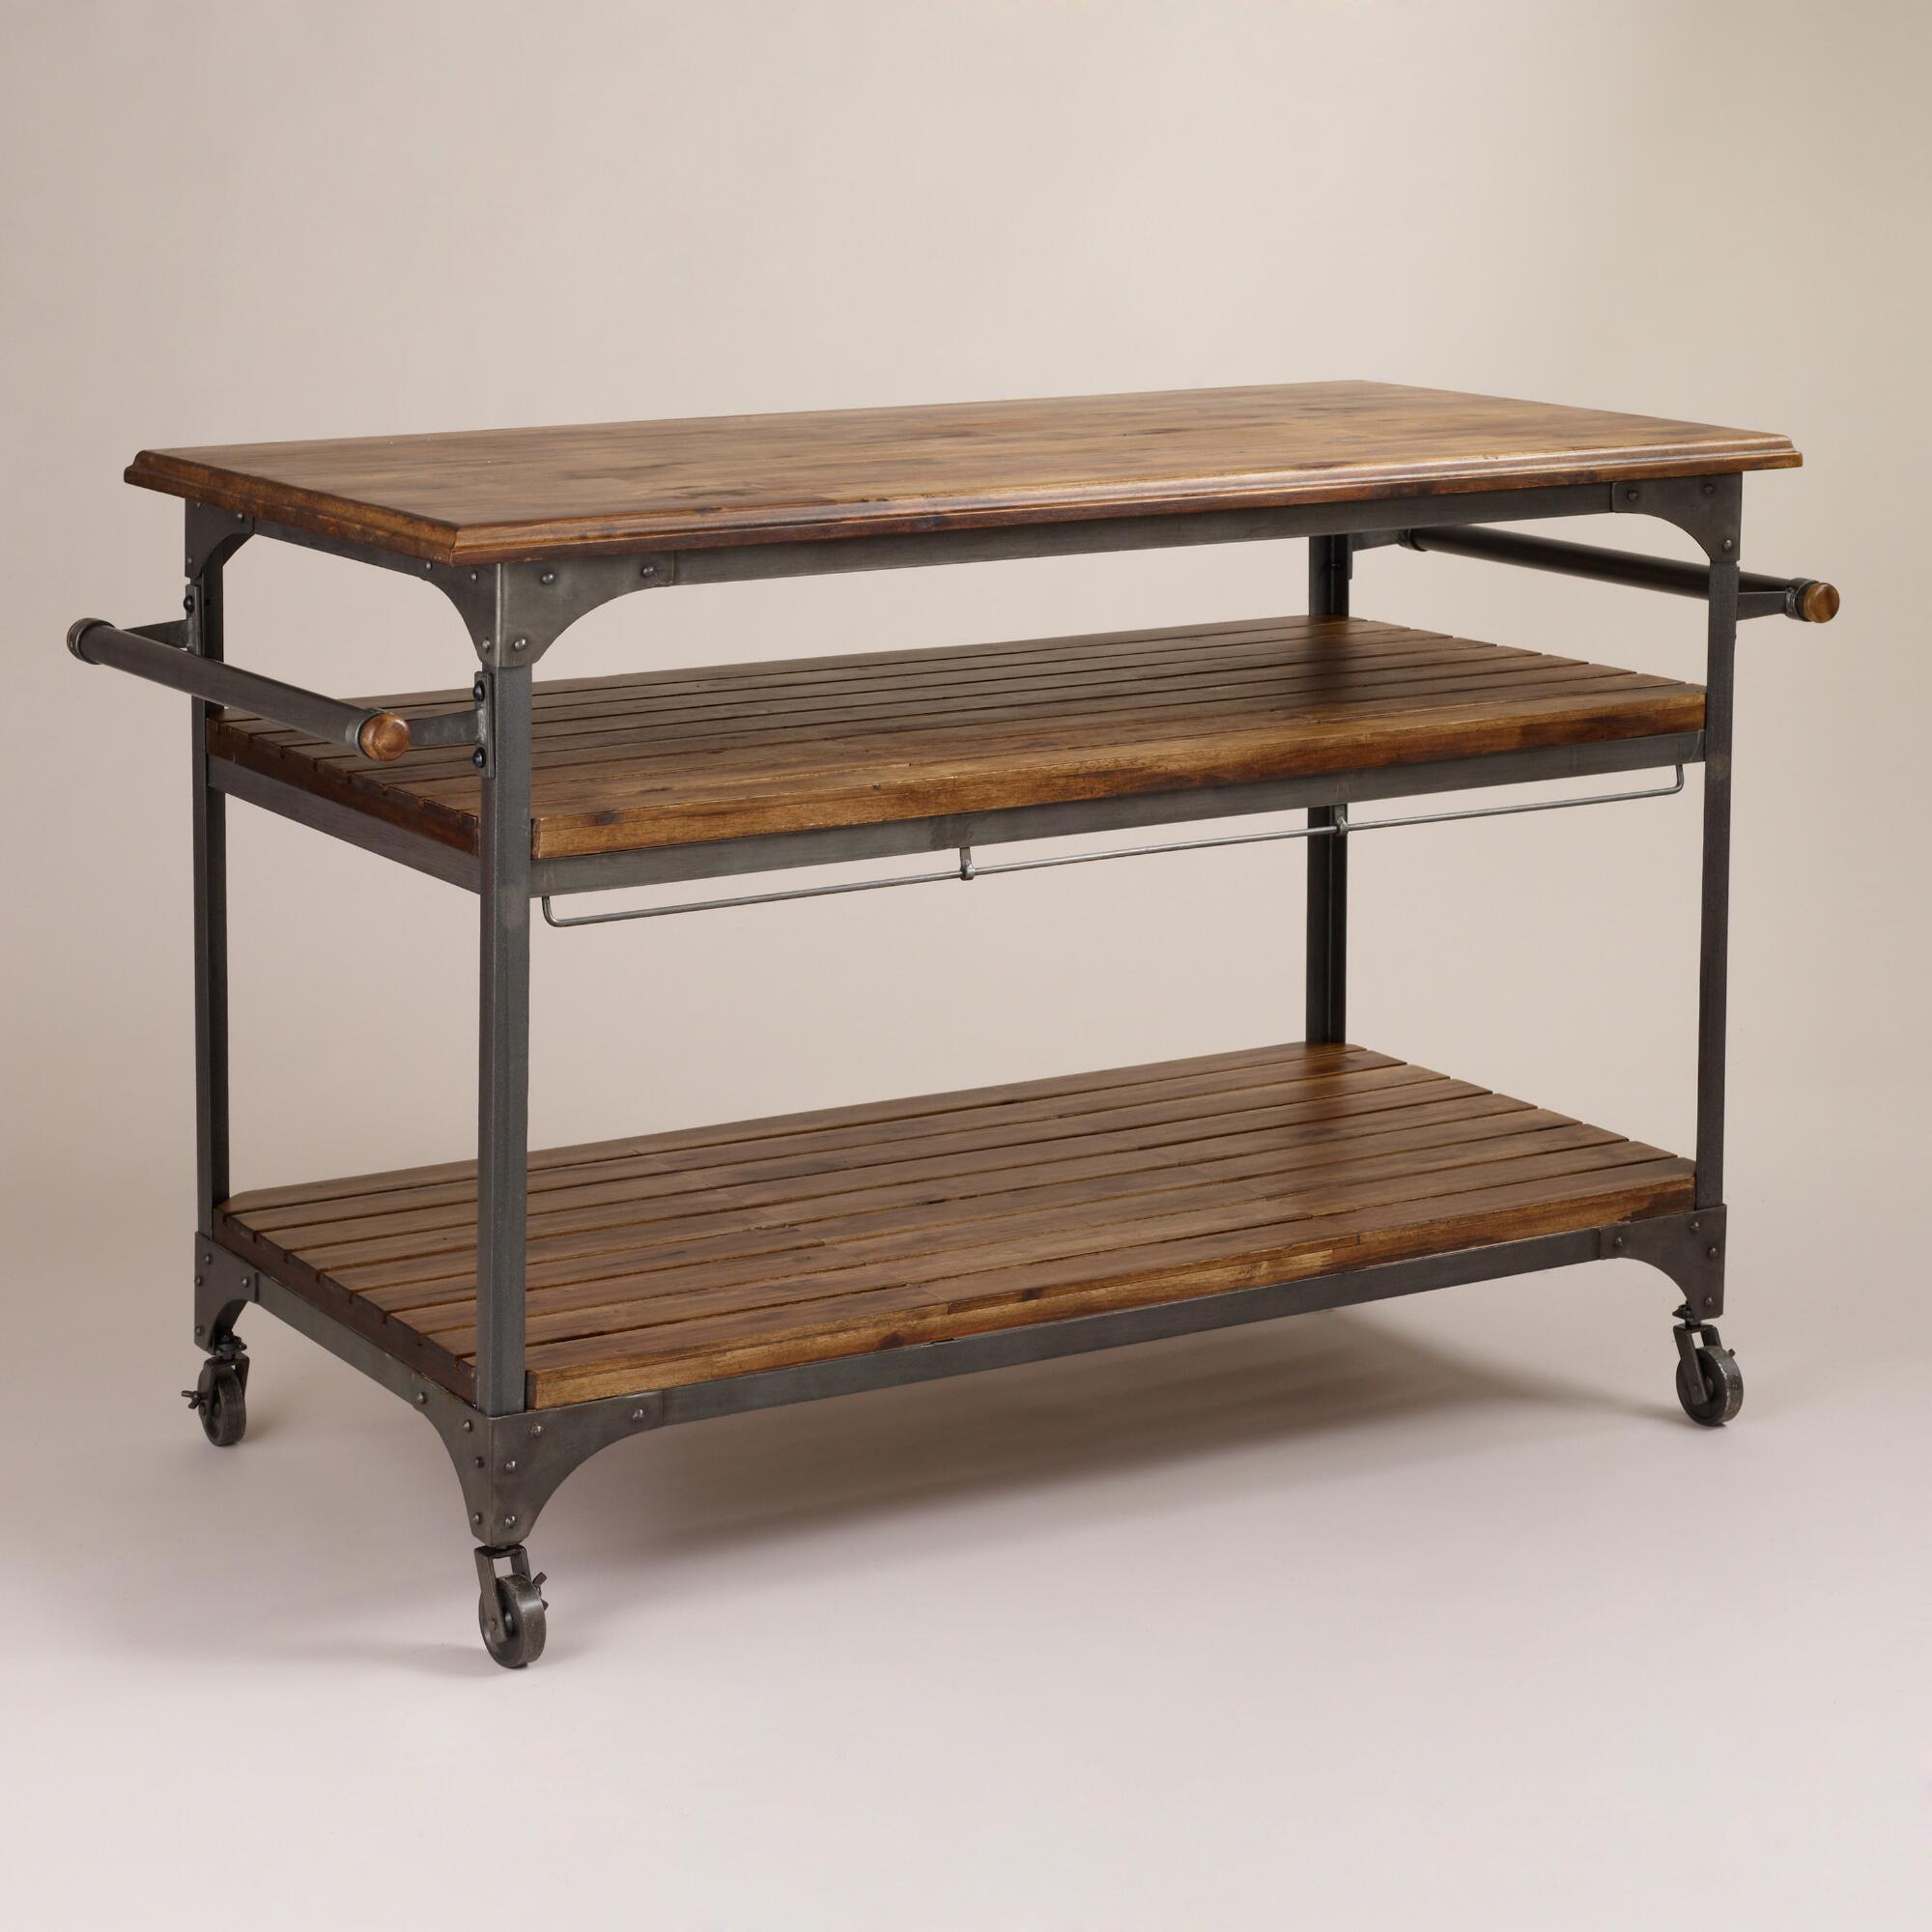 wood and metal jackson kitchen cart world market - Kitchen Carts